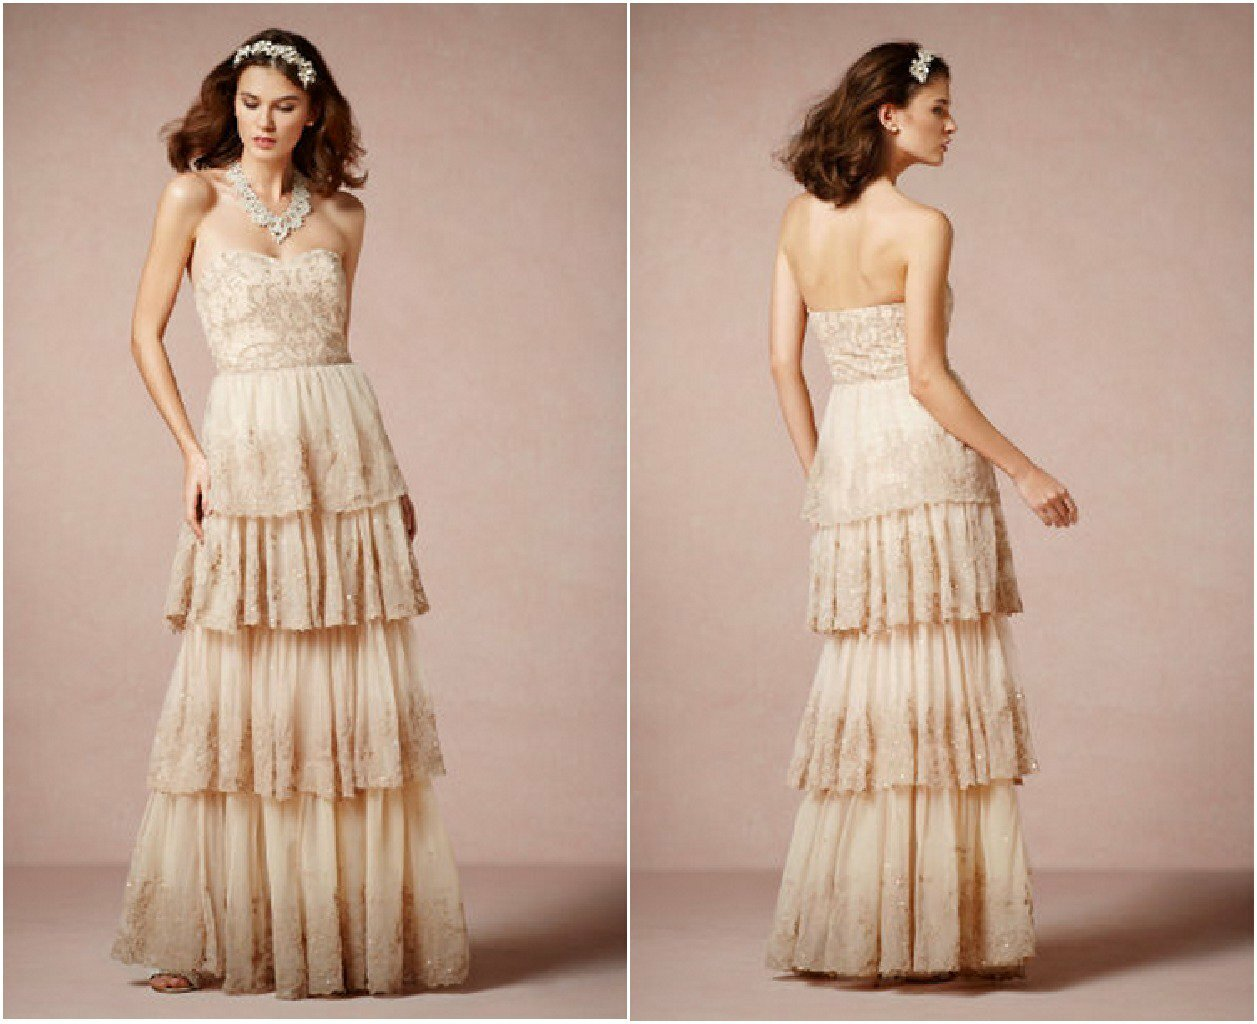 The Most Expensive Wedding Dresses Photo 8 Browse